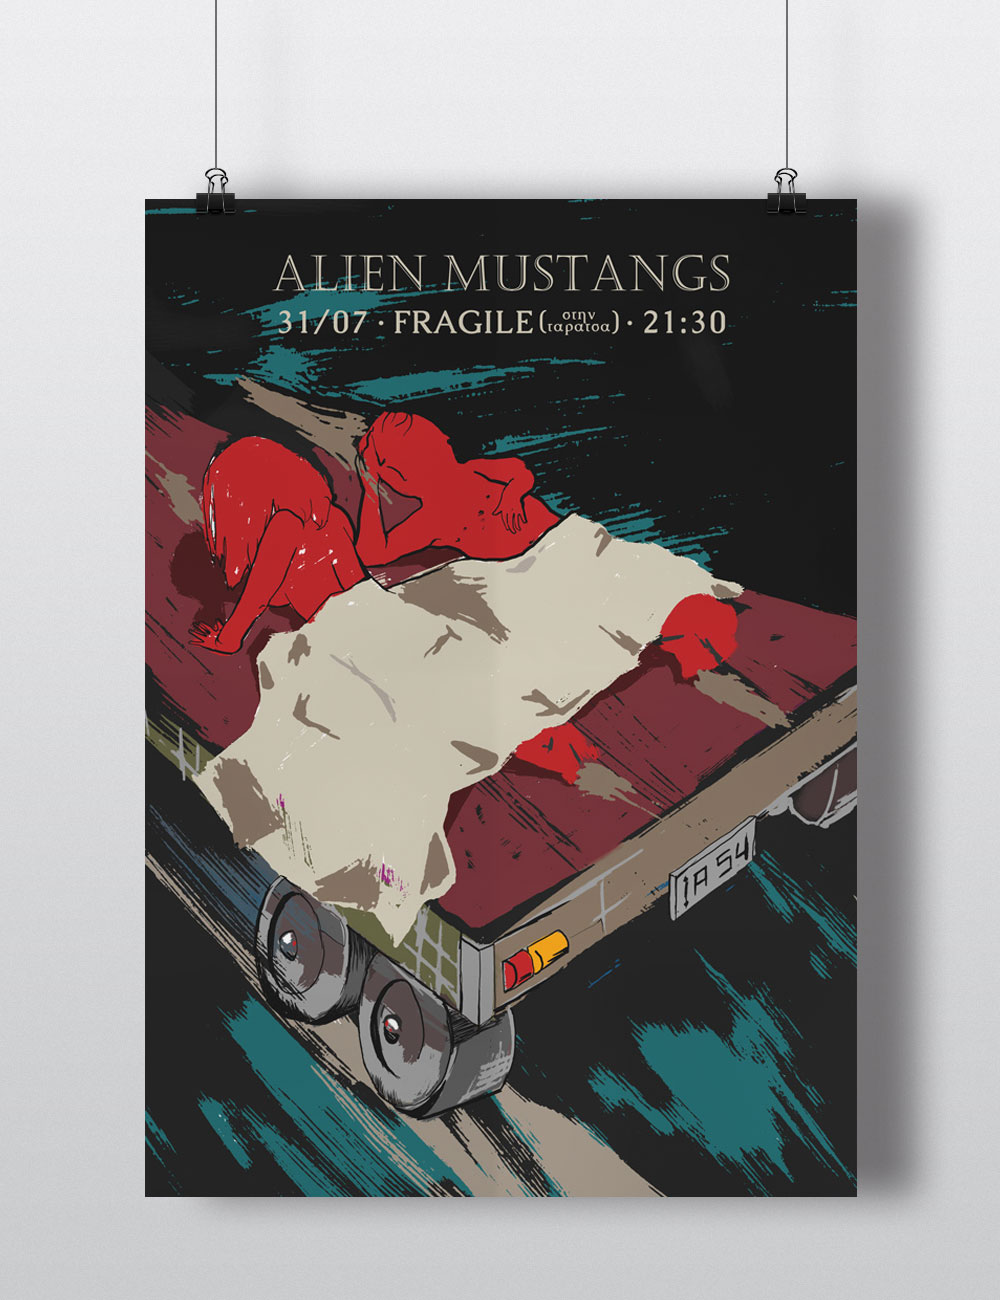 Poster for Alien Mustangs live concert at Fragile Bar, Thessaloniki